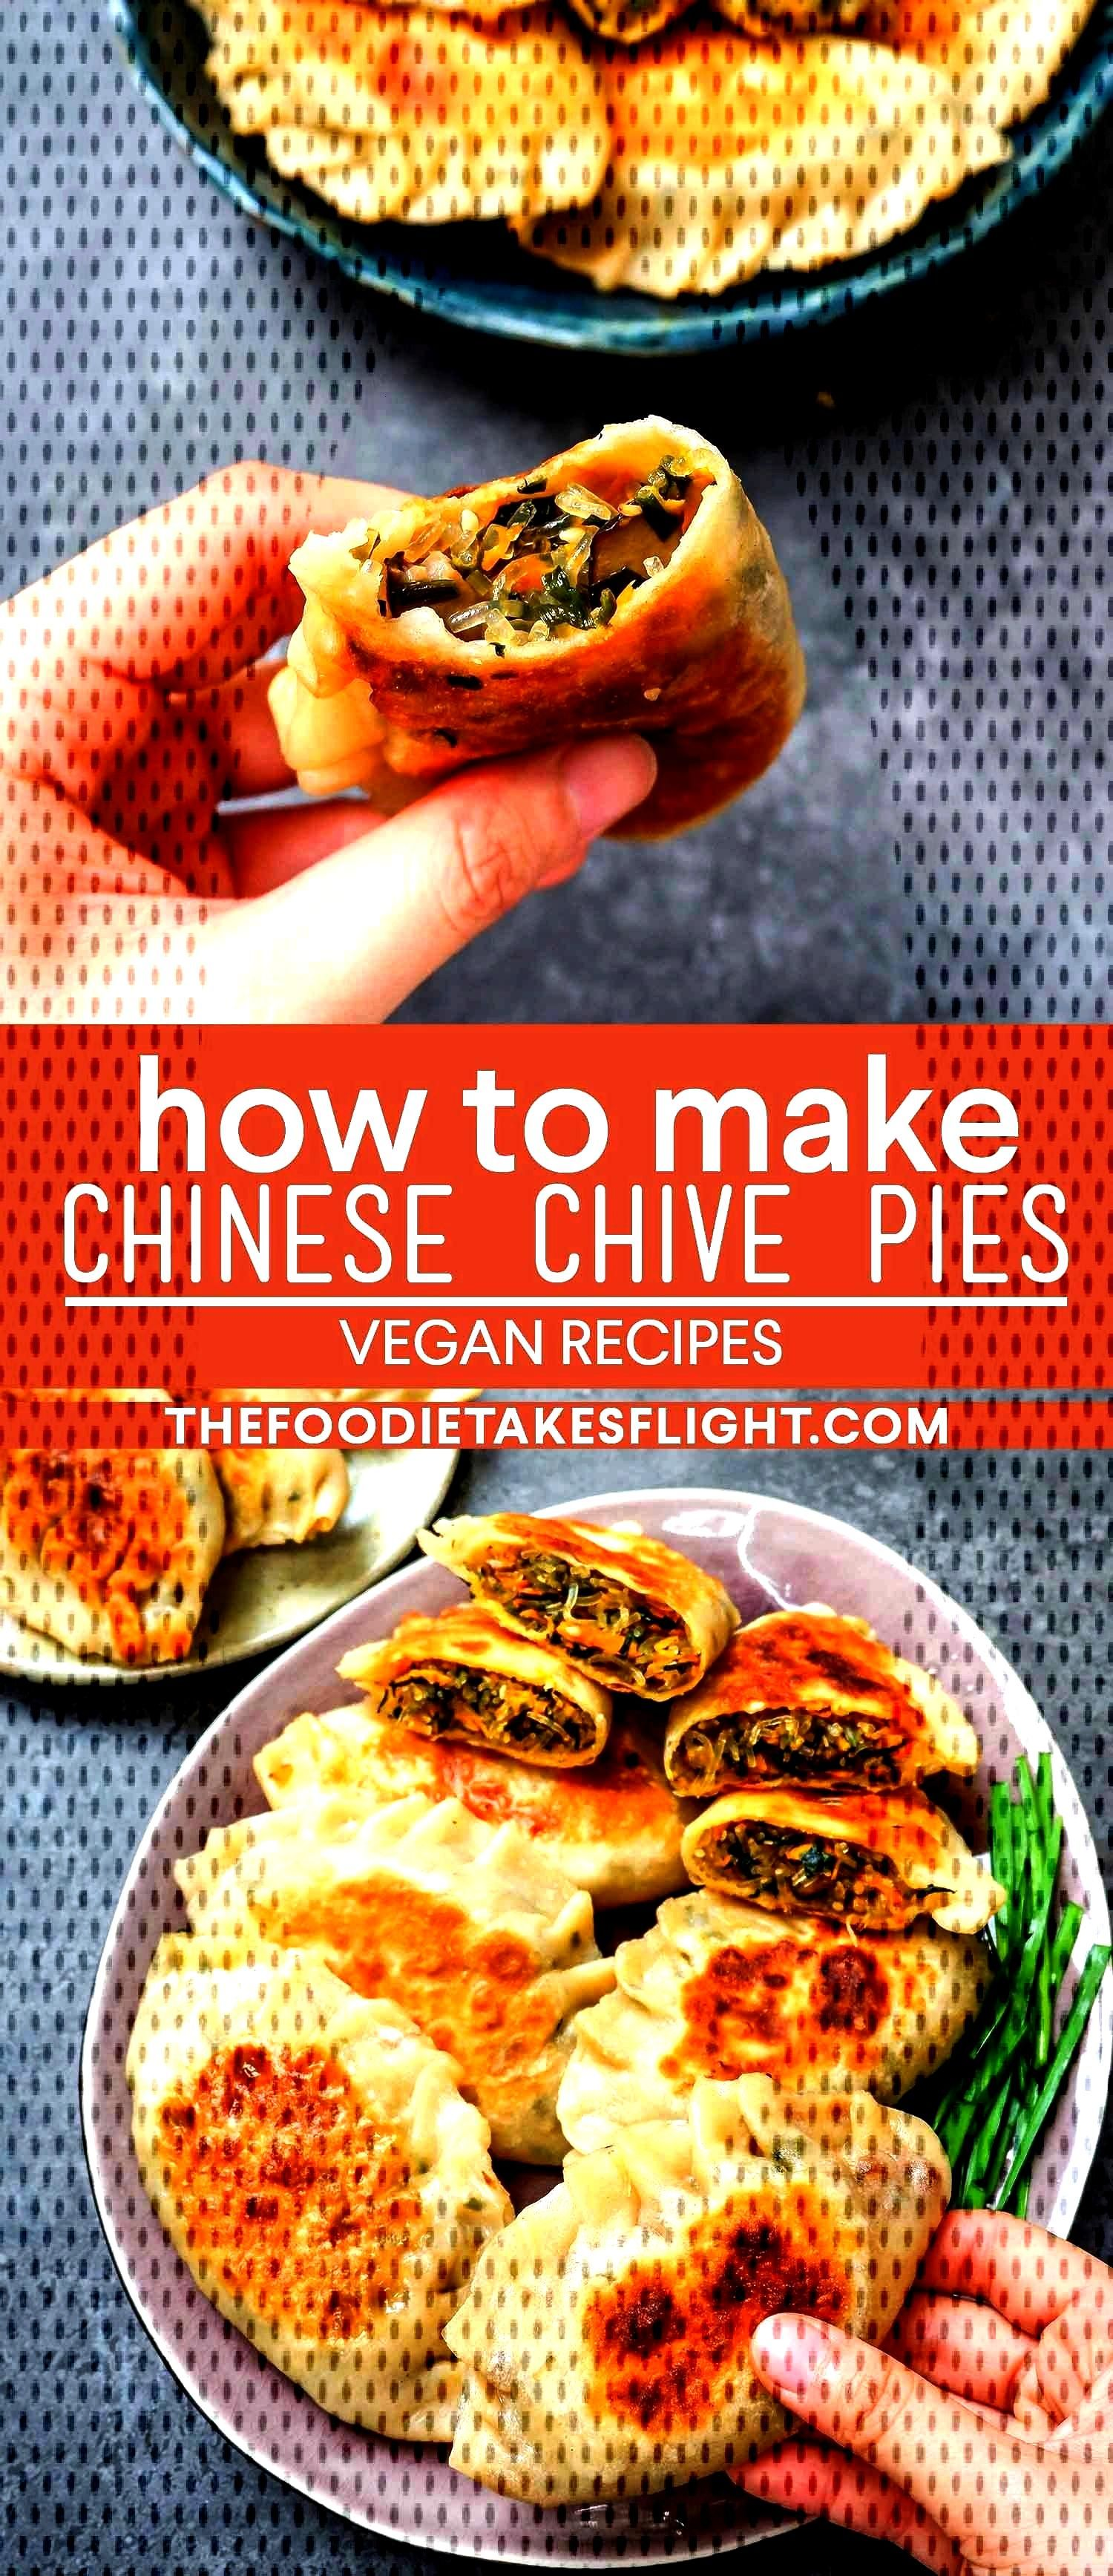 Chinese Chive Pies (Vegan Recipe)Chinese Chive Pies (Vegan Recipe)Chinese Chive Pies (Vegan Recipe)